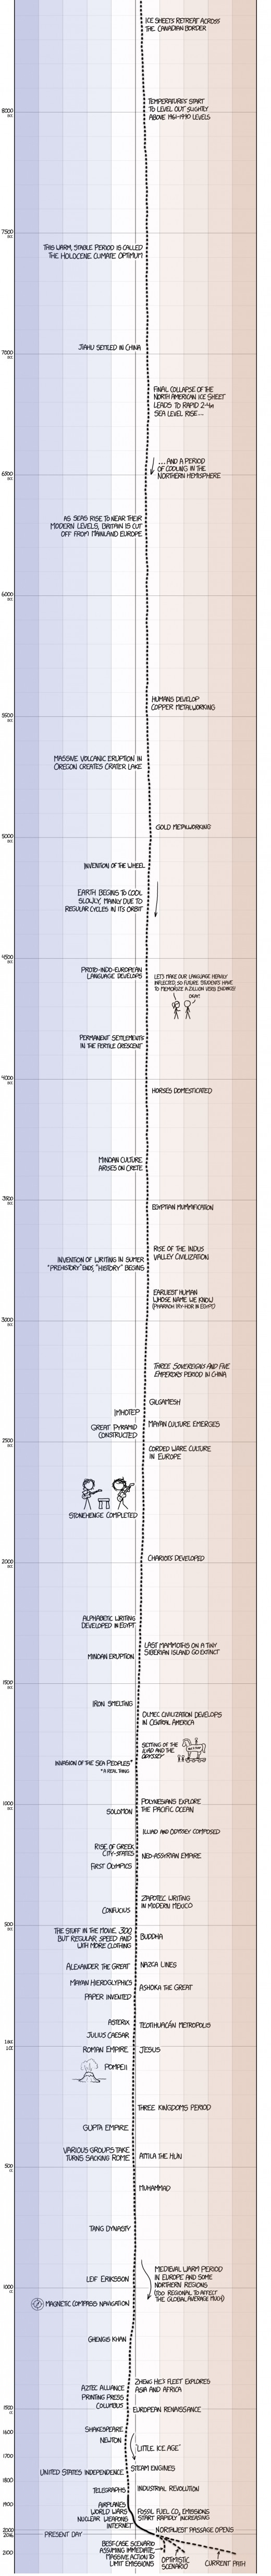 """Second half of """"A Timeline of Earth's Average Temperature"""""""